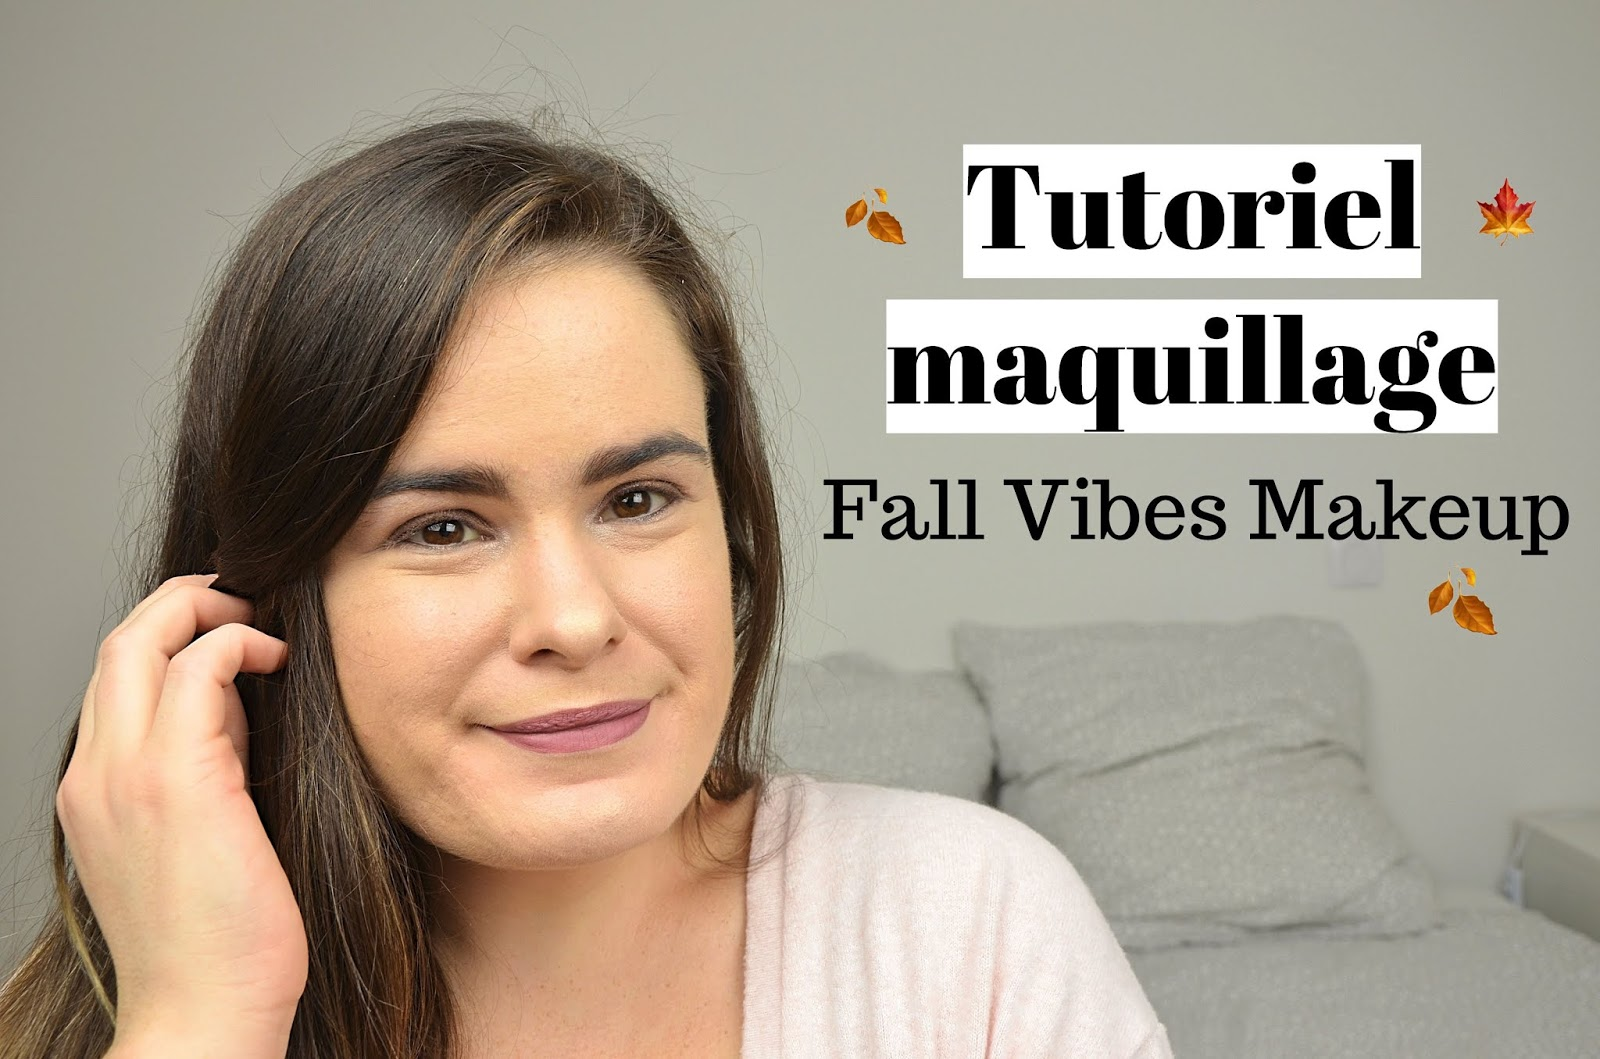 Fall Vibes Makeup  Tutoriel maquillage automnehiver 2018 avec la chocolate bar de Too Faced